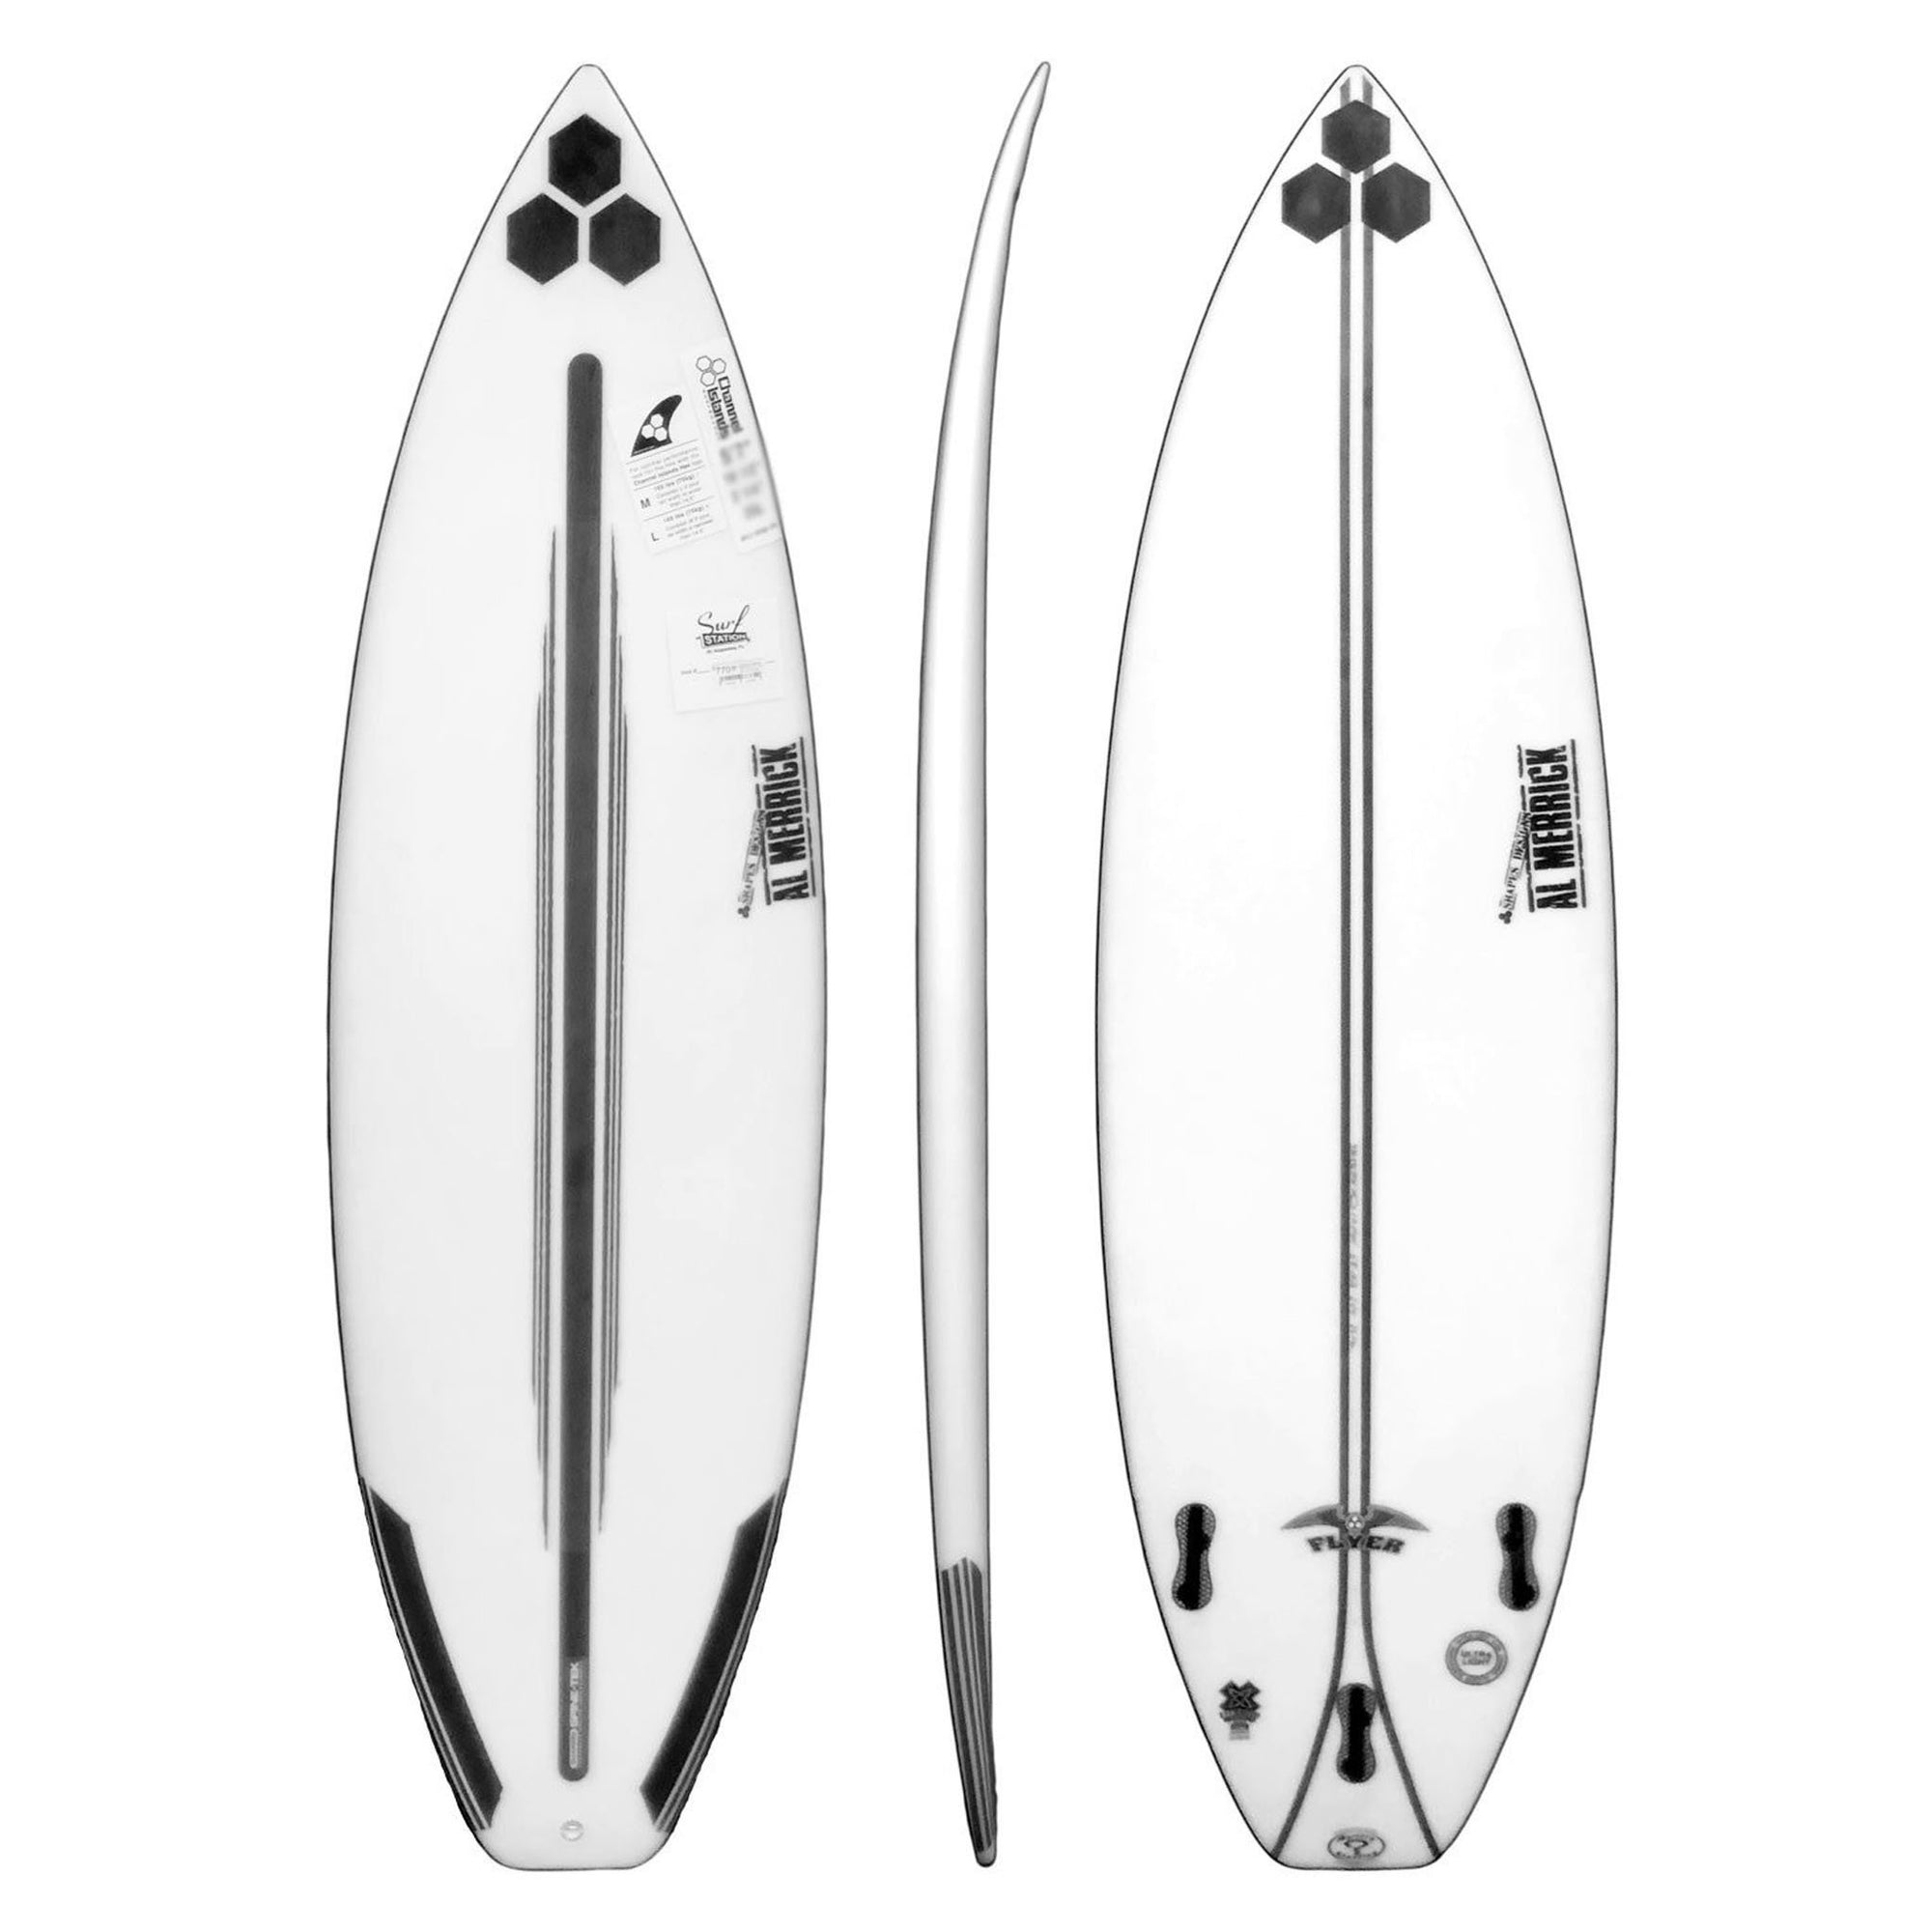 Channel Islands OG Flyer Spine-Tek Discount Surfboard